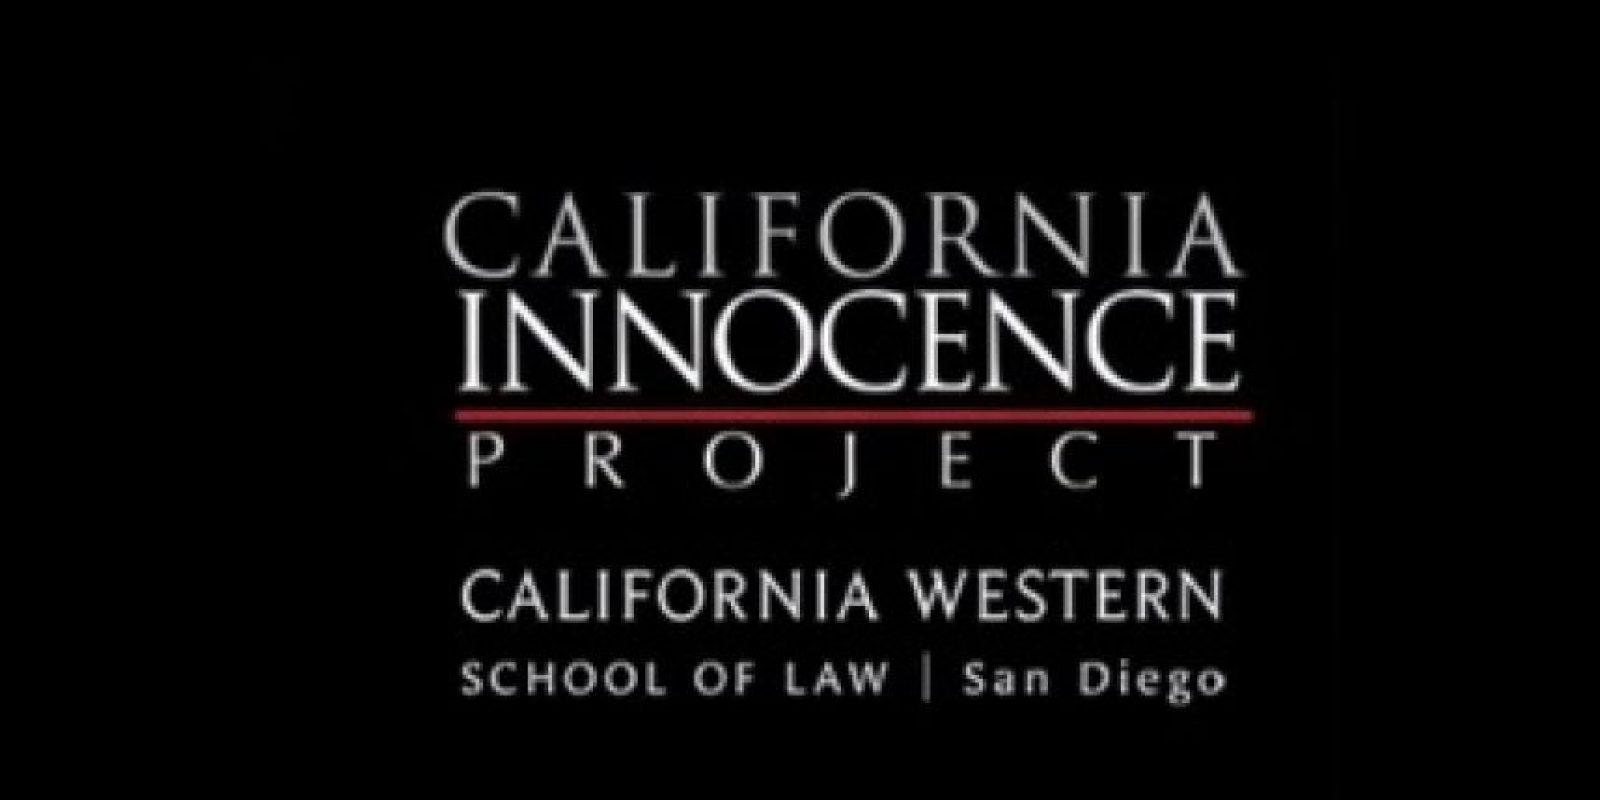 Foto: Vía Youtube/California Innocence Project